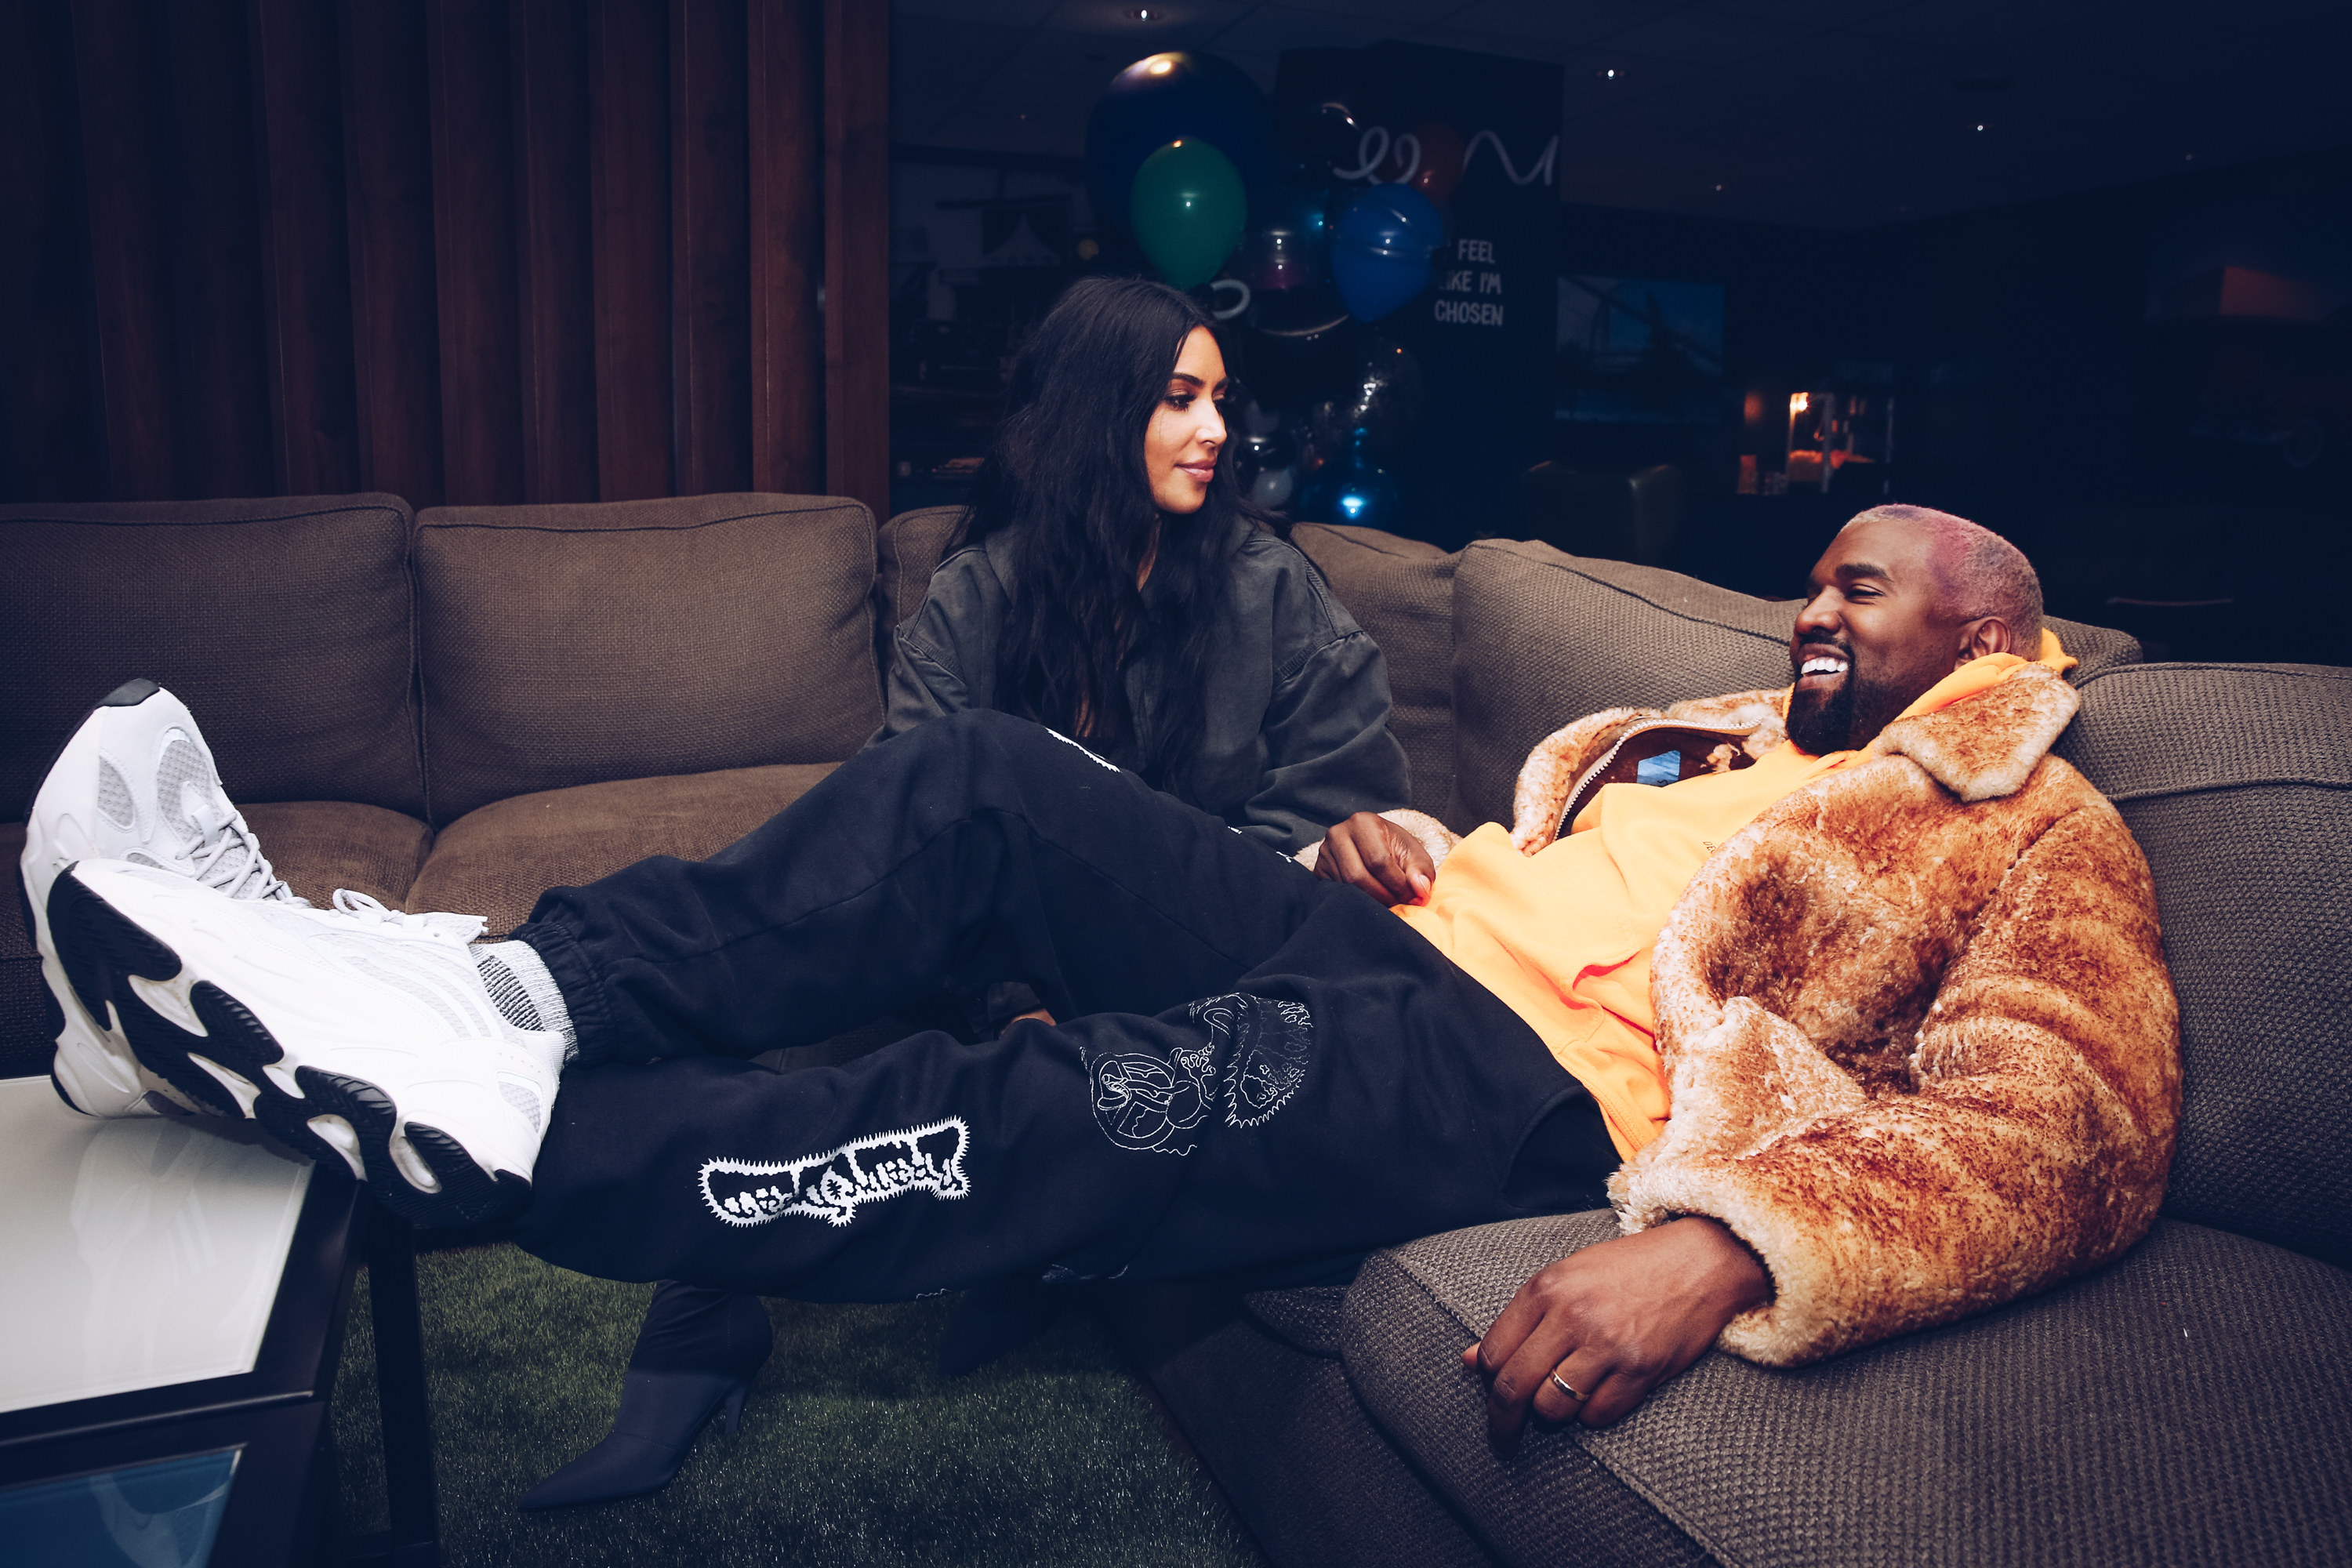 Kim sits next to Kanye on a wraparound couch as he puts his feet up on a table